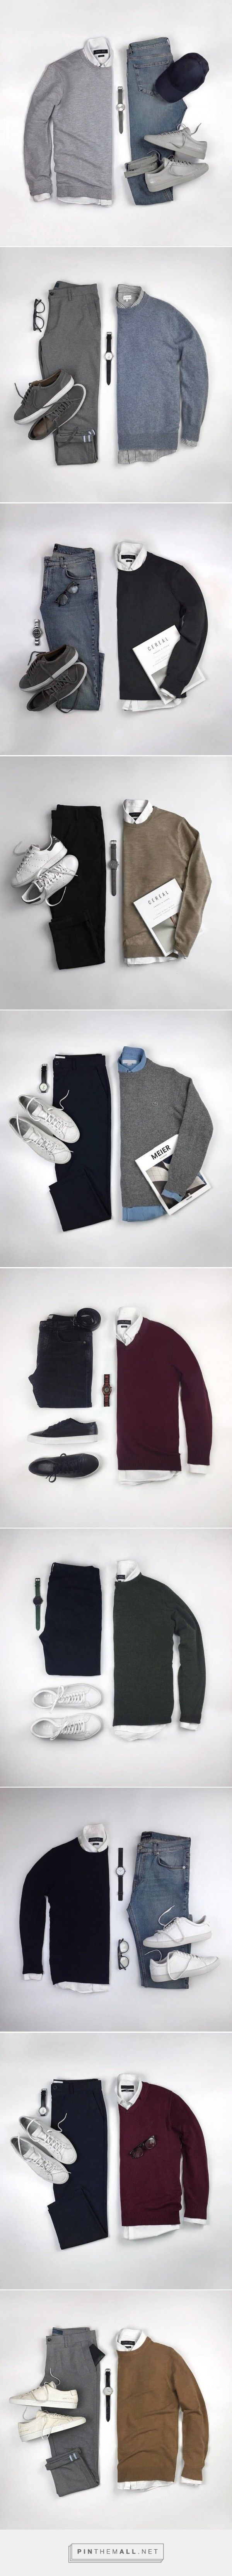 Sweater + Shirt Outfit Ideas For Men #mensfashion